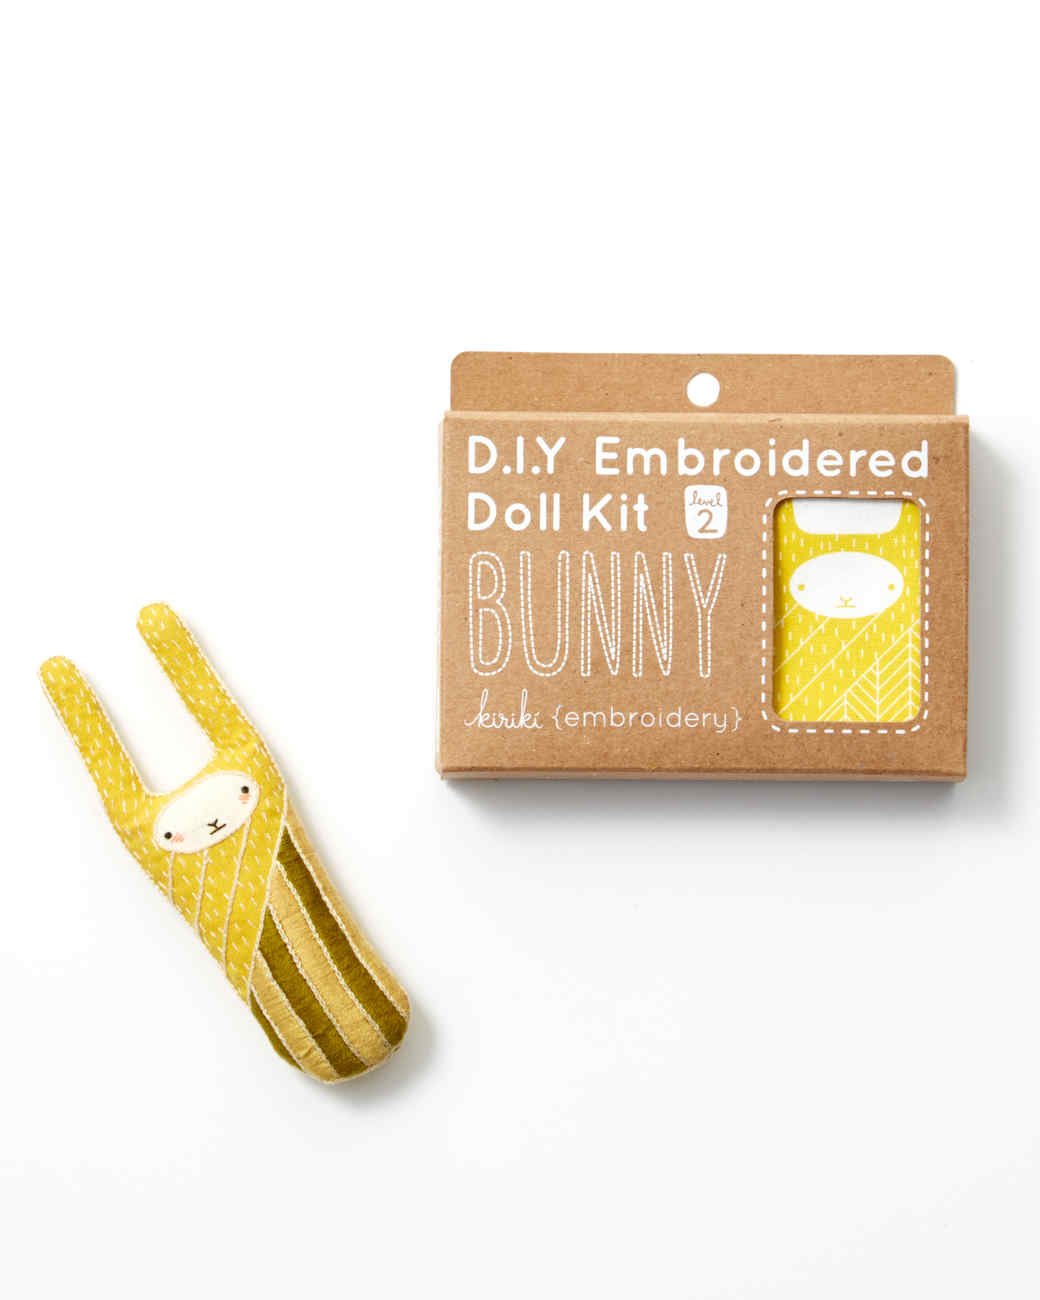 crafty-girl-embroidered-bunny-2956-d112789-0116.jpg